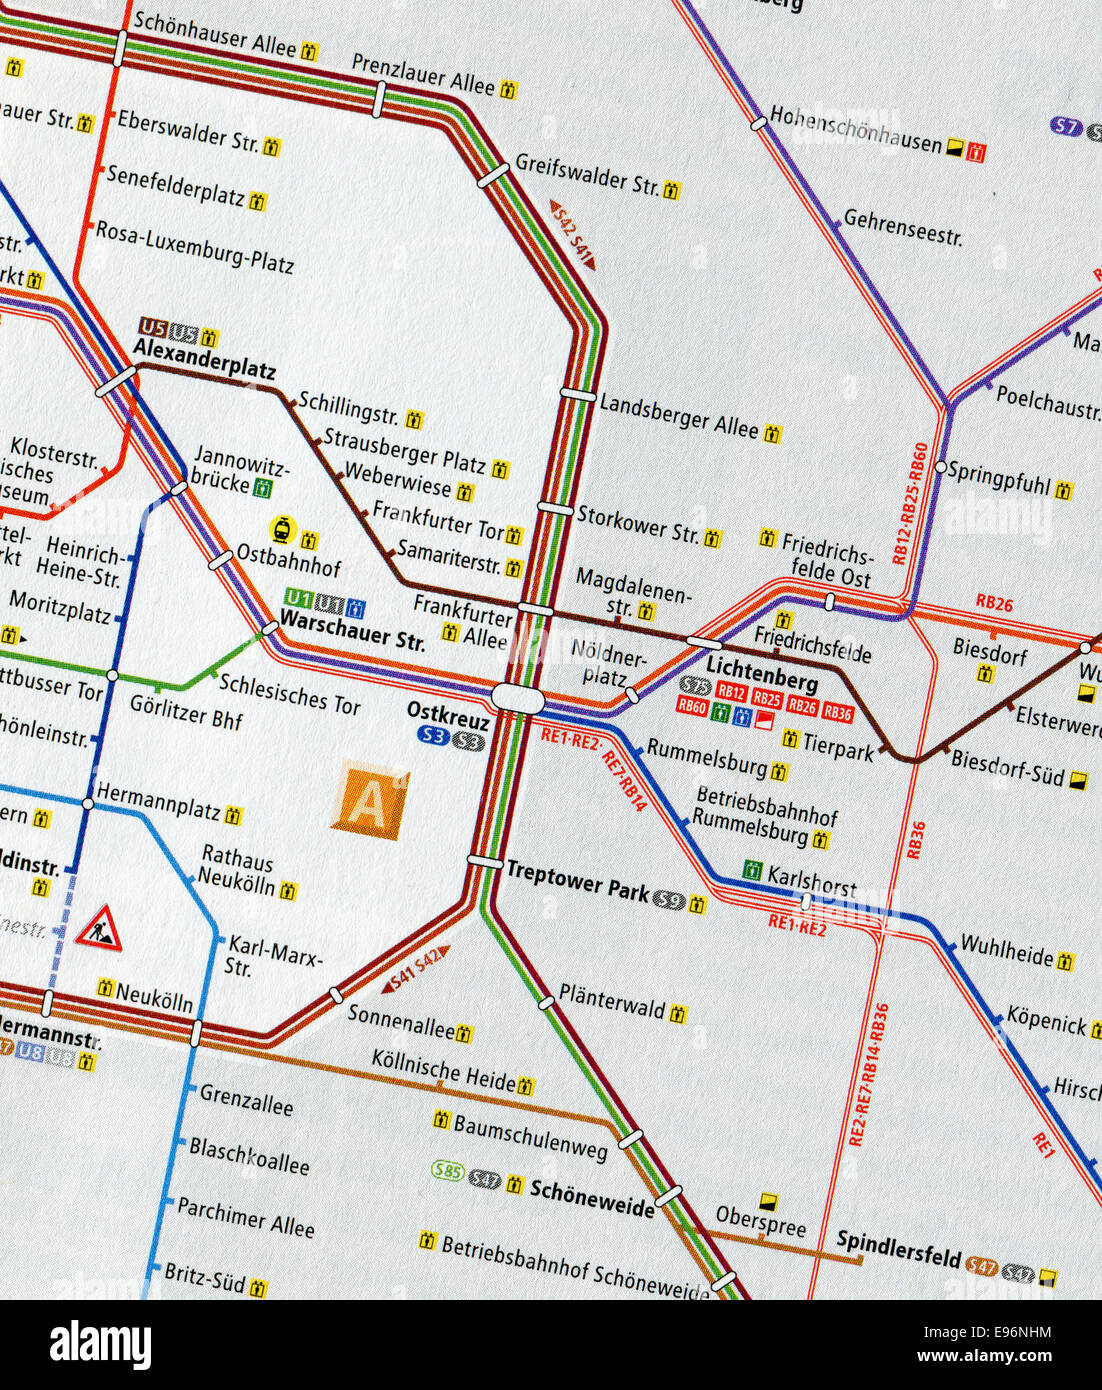 Central Germany Map.Berlin Germany May 11 2014 Close Up Map Of Central Berlin